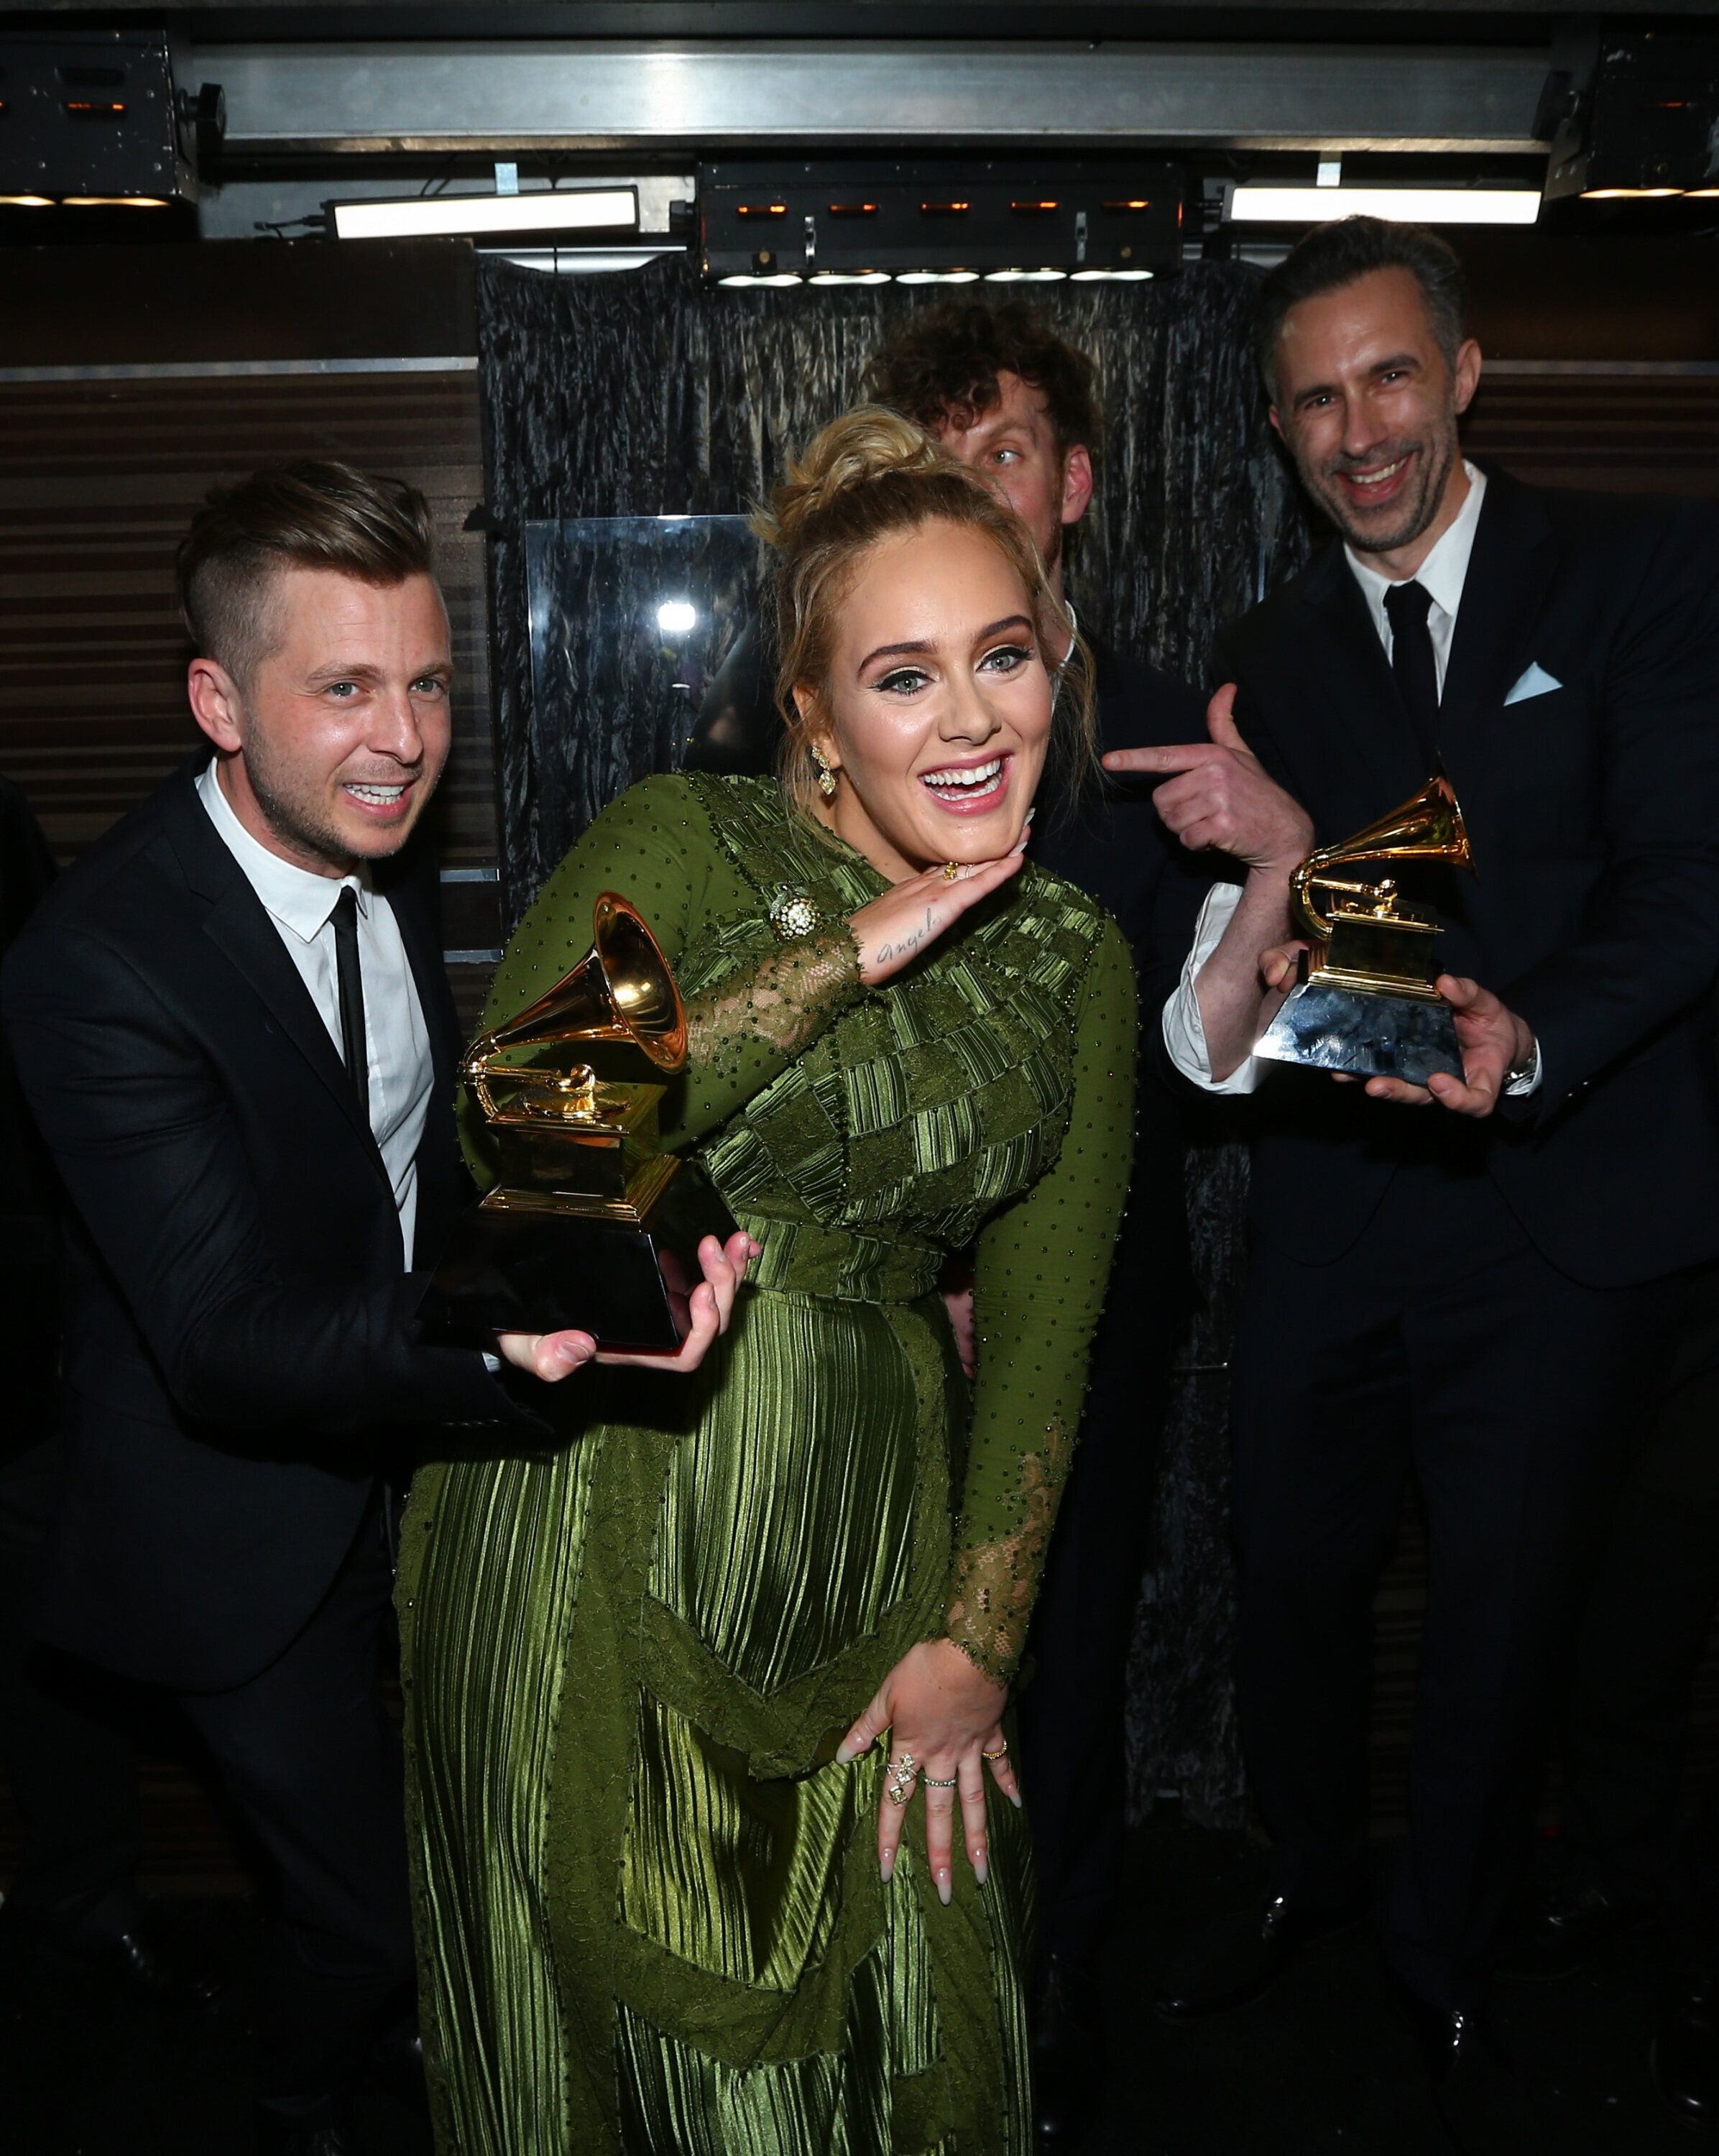 LOS ANGELES - FEBRUARY 12: Adele, winner of Record of the Year, backstage at THE 59TH ANNUAL GRAMMY AWARDS, broadcast live from the STAPLES Center in Los Angeles, Sunday, Feb. 12 (8:00-11:30 PM, live ET/5:00-8:30 PM, live PT; 6:00-9:30 PM, live MT) on the CBS Television Network.   (Photo by Mark Davis/CBS via Getty Images)